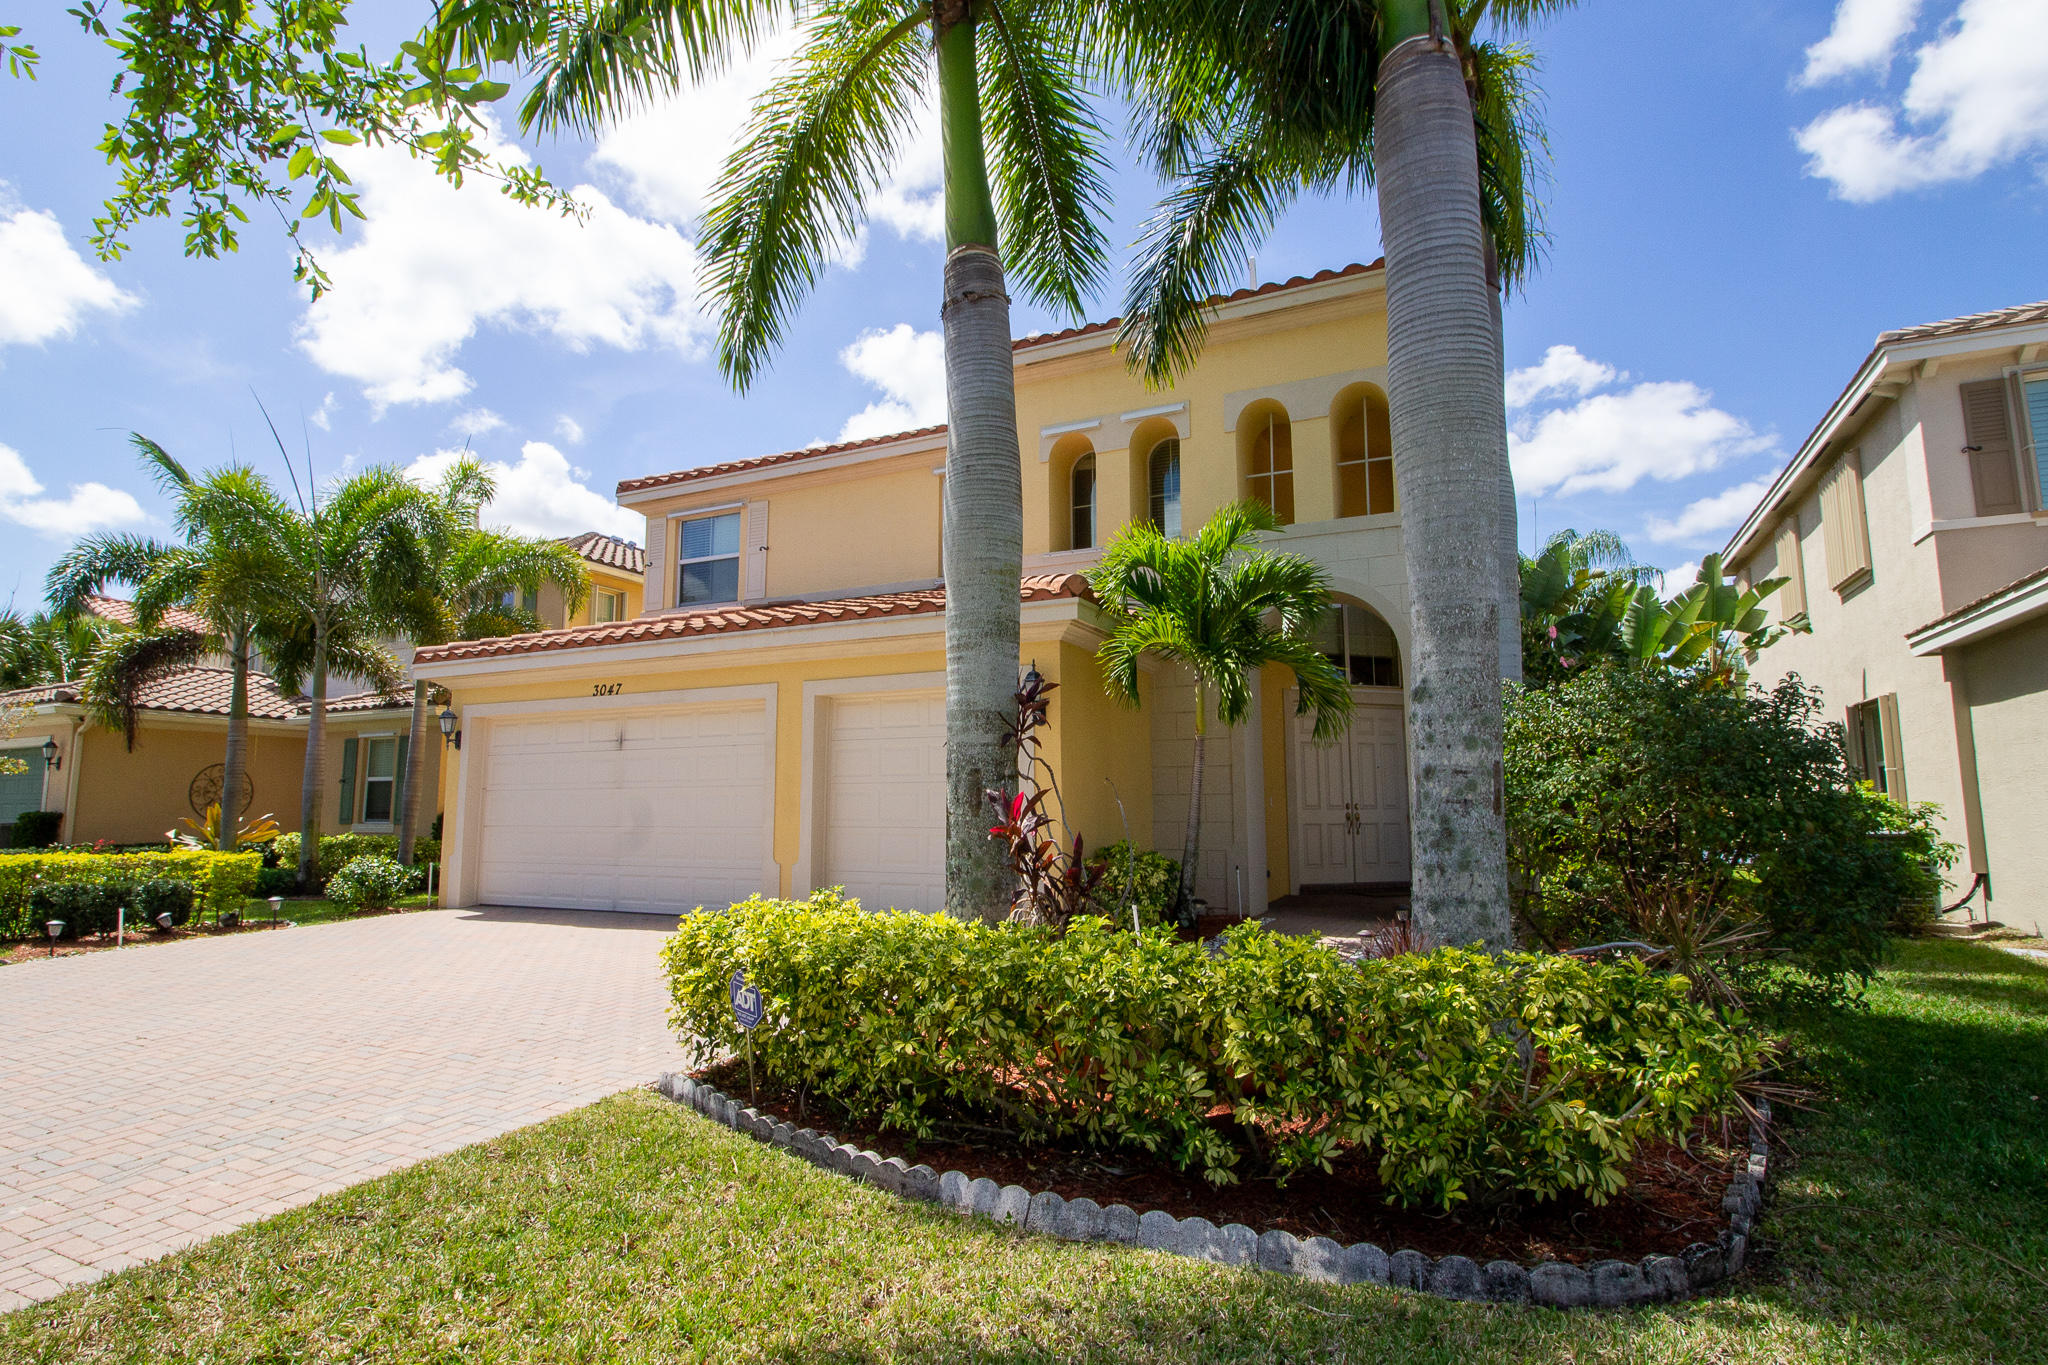 3047 Payson Way, Wellington, Florida 33414, 5 Bedrooms Bedrooms, ,3.1 BathroomsBathrooms,Single Family,For Rent,Olympia,Payson,RX-10628124